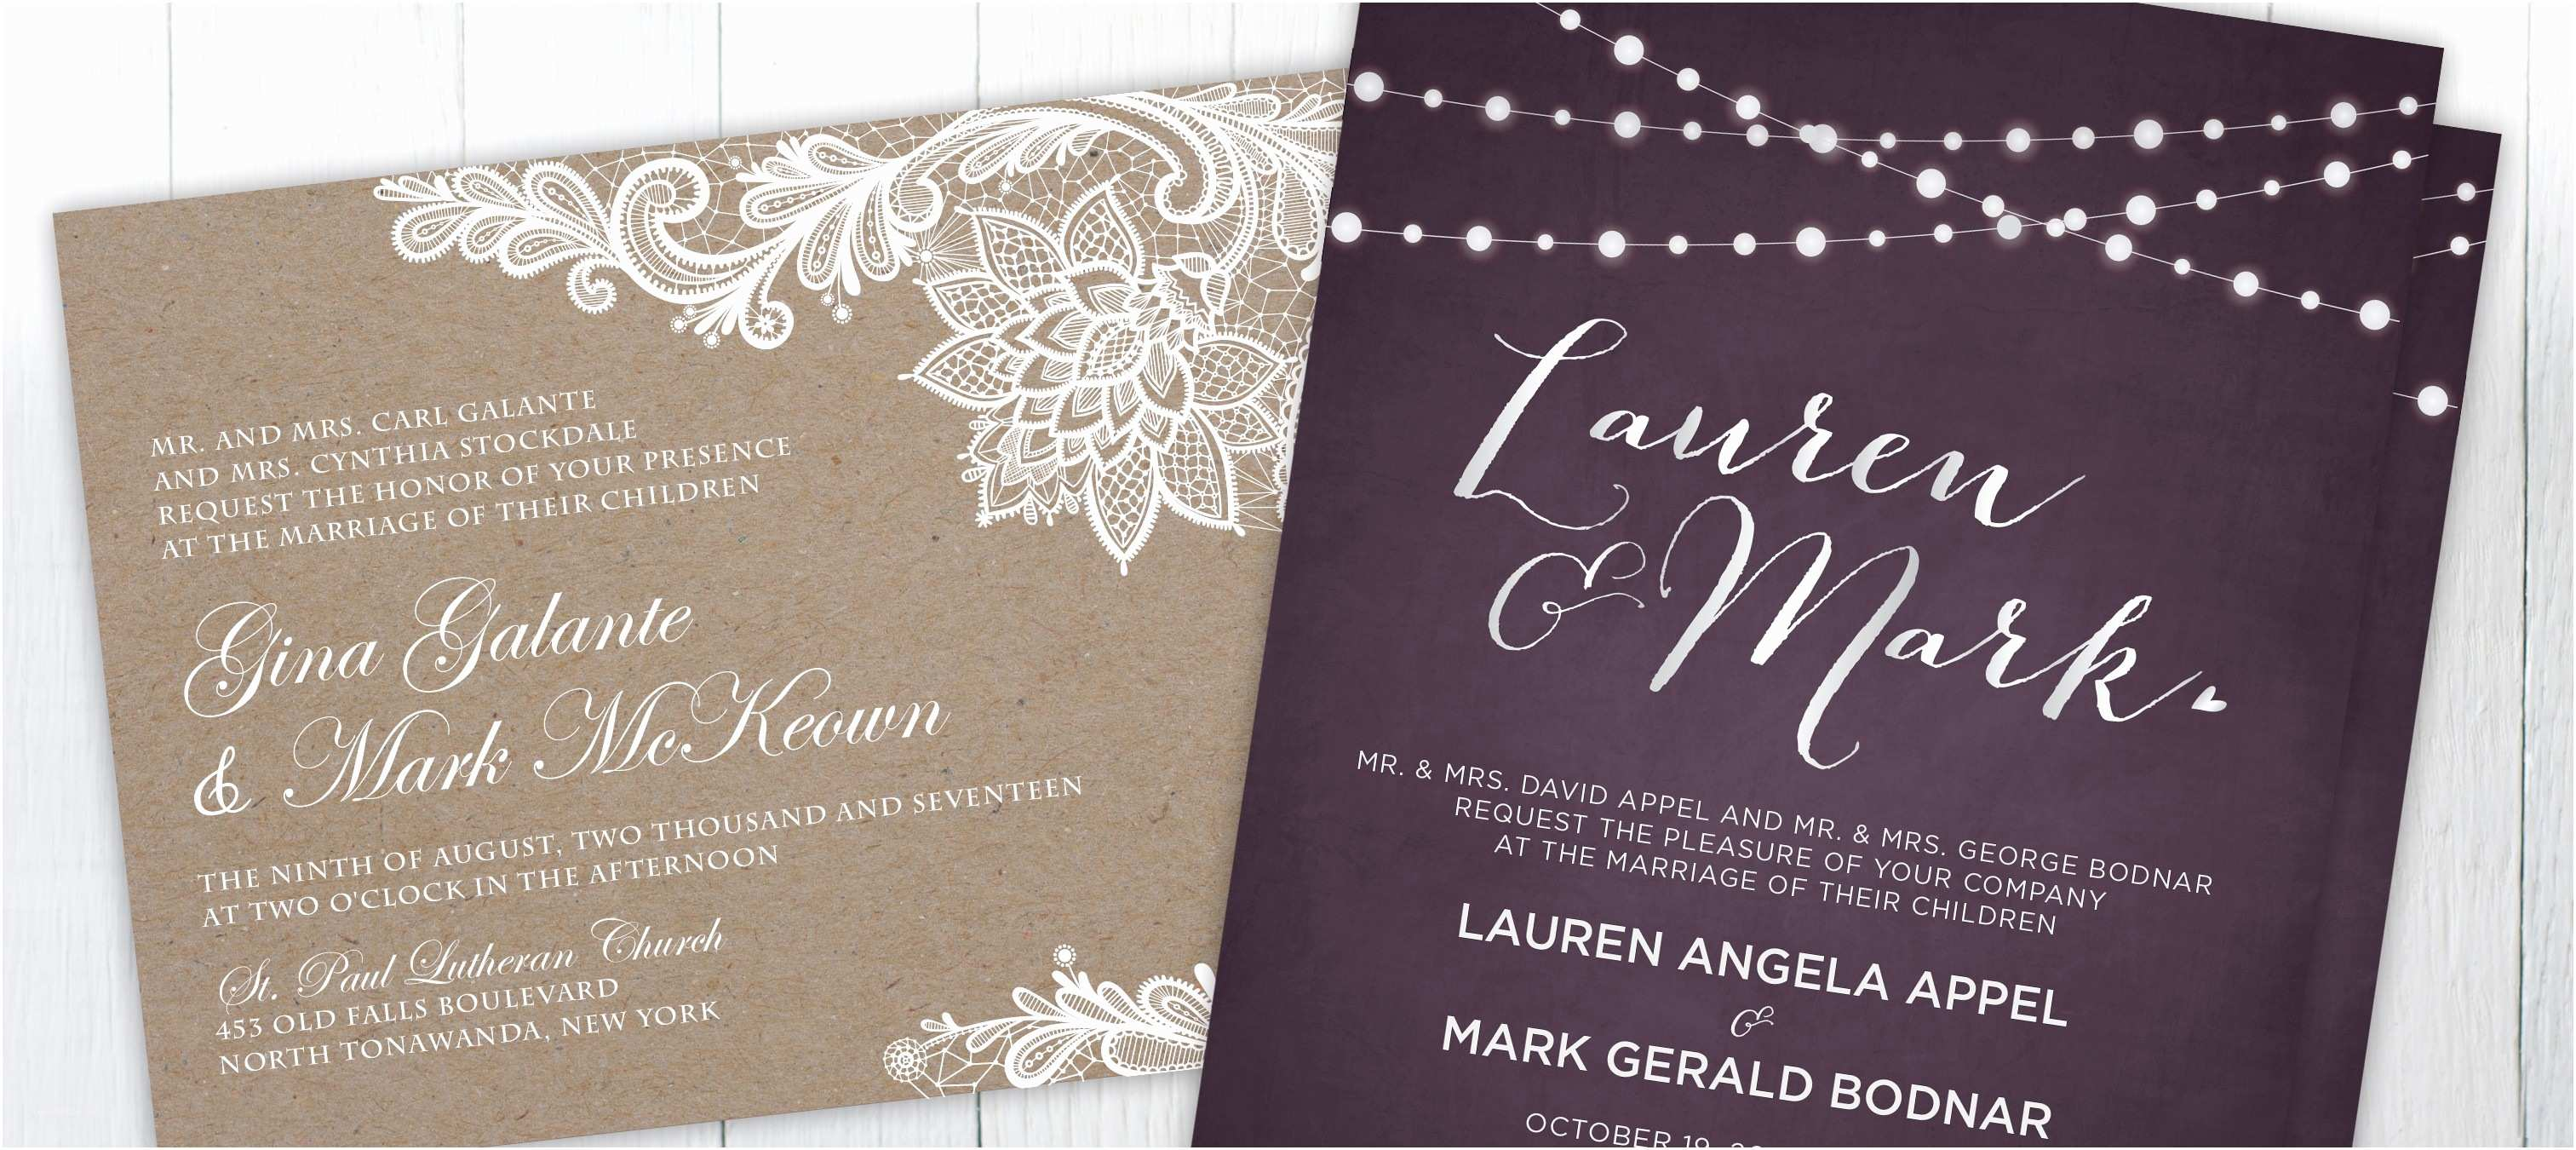 Wedding Invitation Wording together with their Parents Beautiful Wedding Invite Wording to Her with their